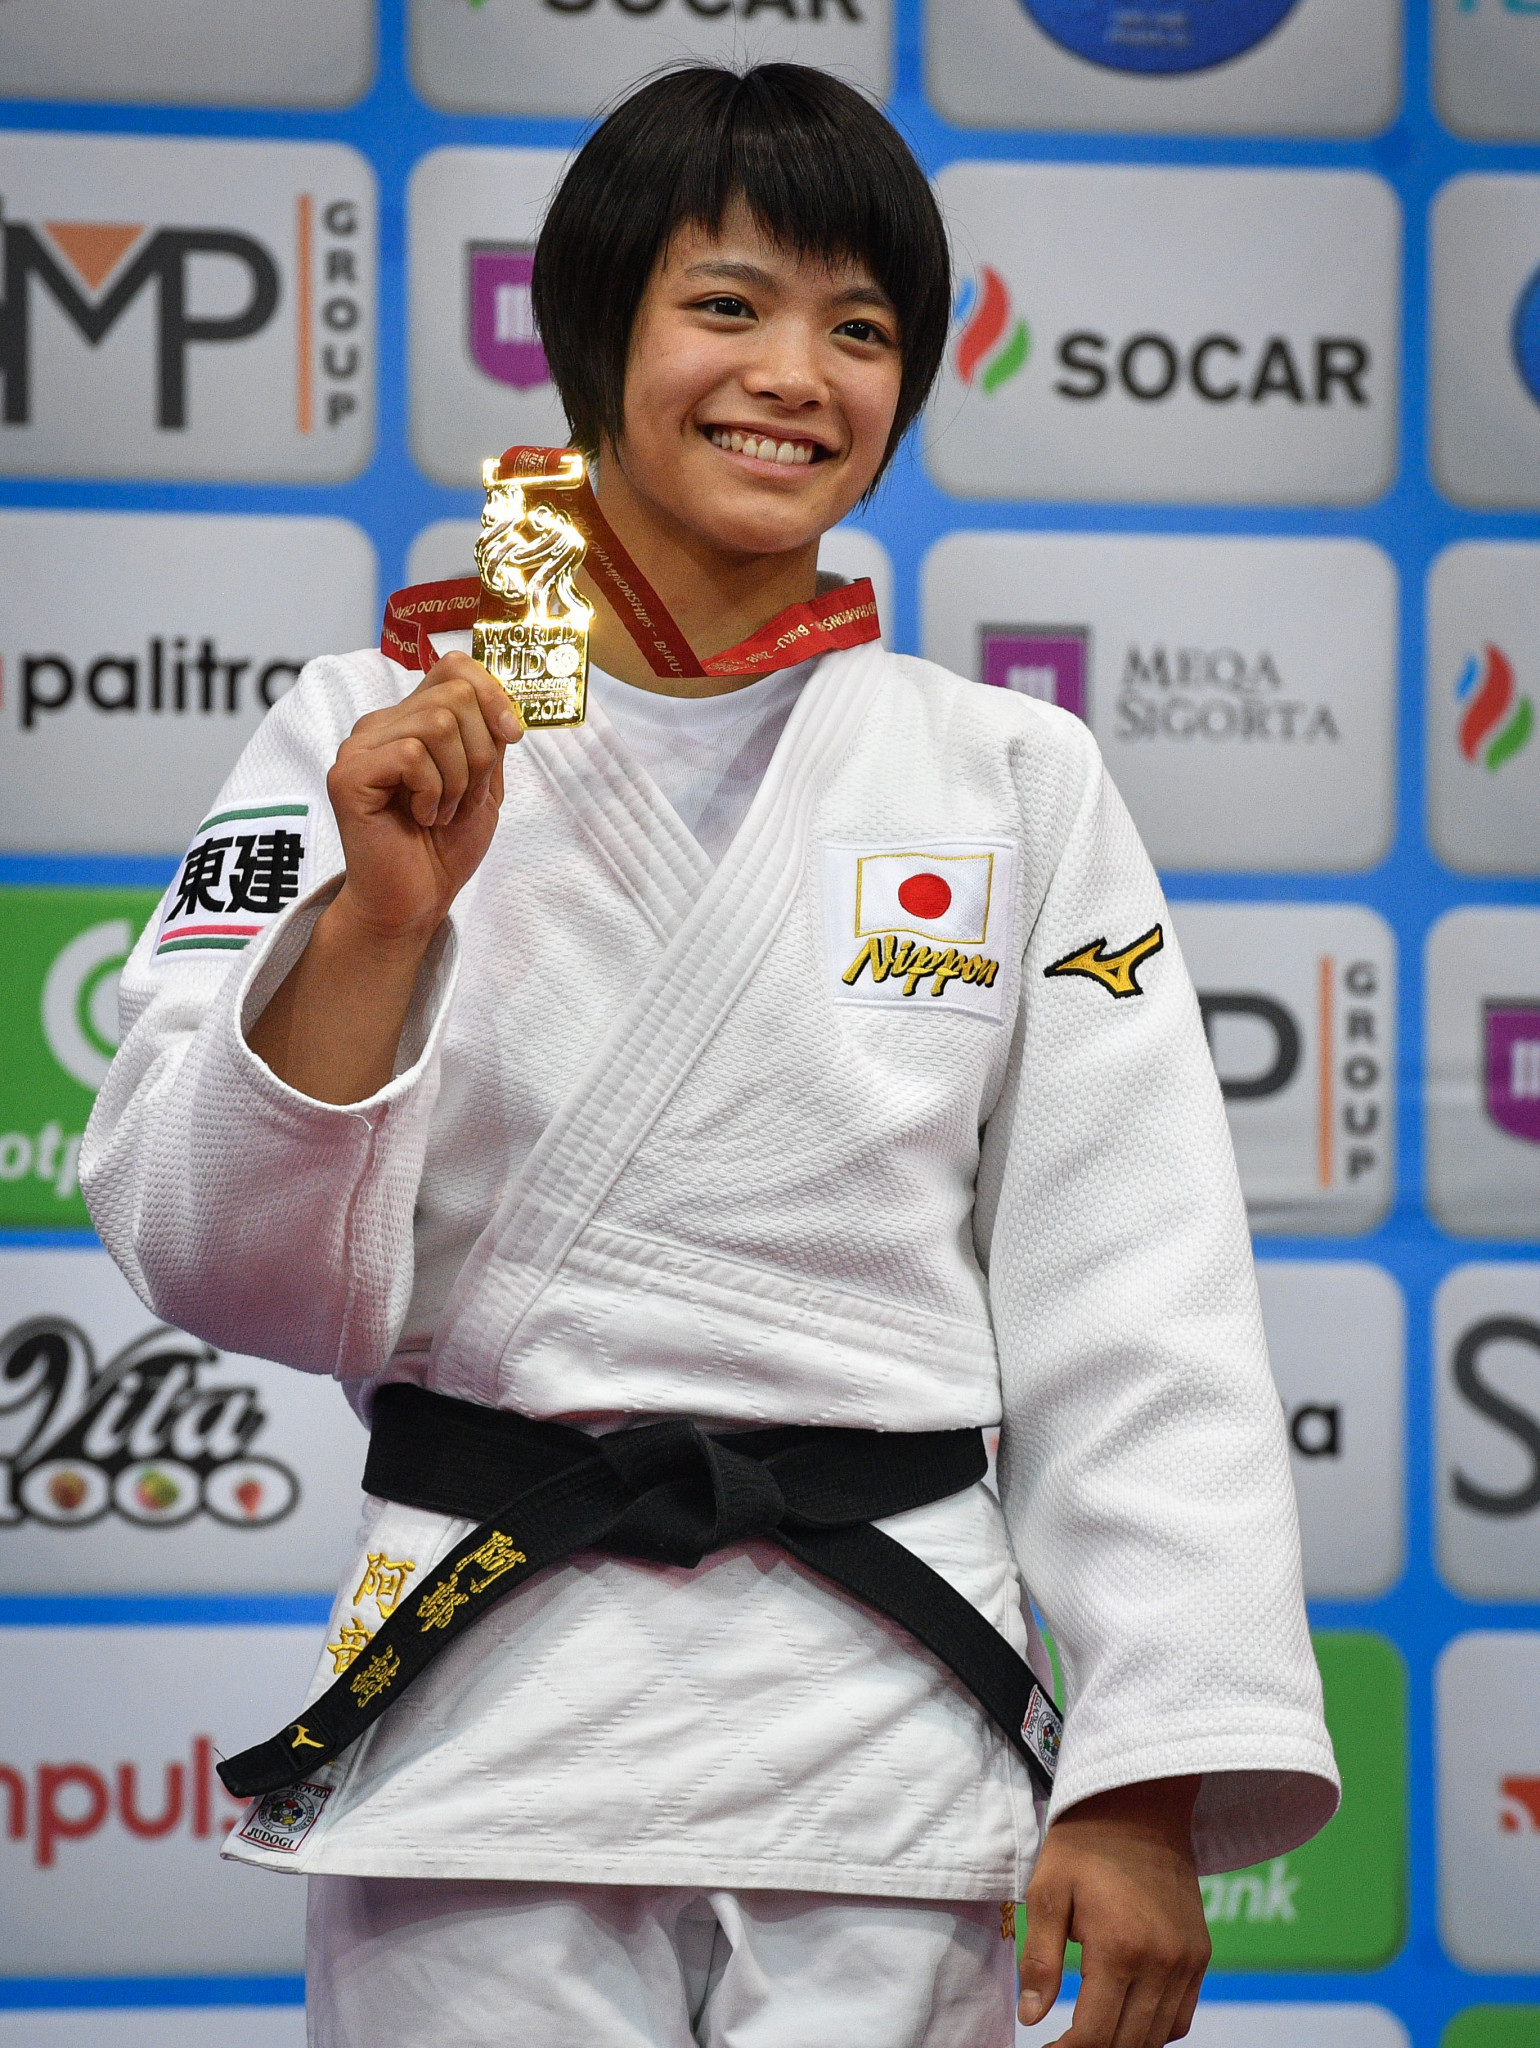 Uta Abe takes gold in the women's under-52kg category at her first World Championships ©Getty Images